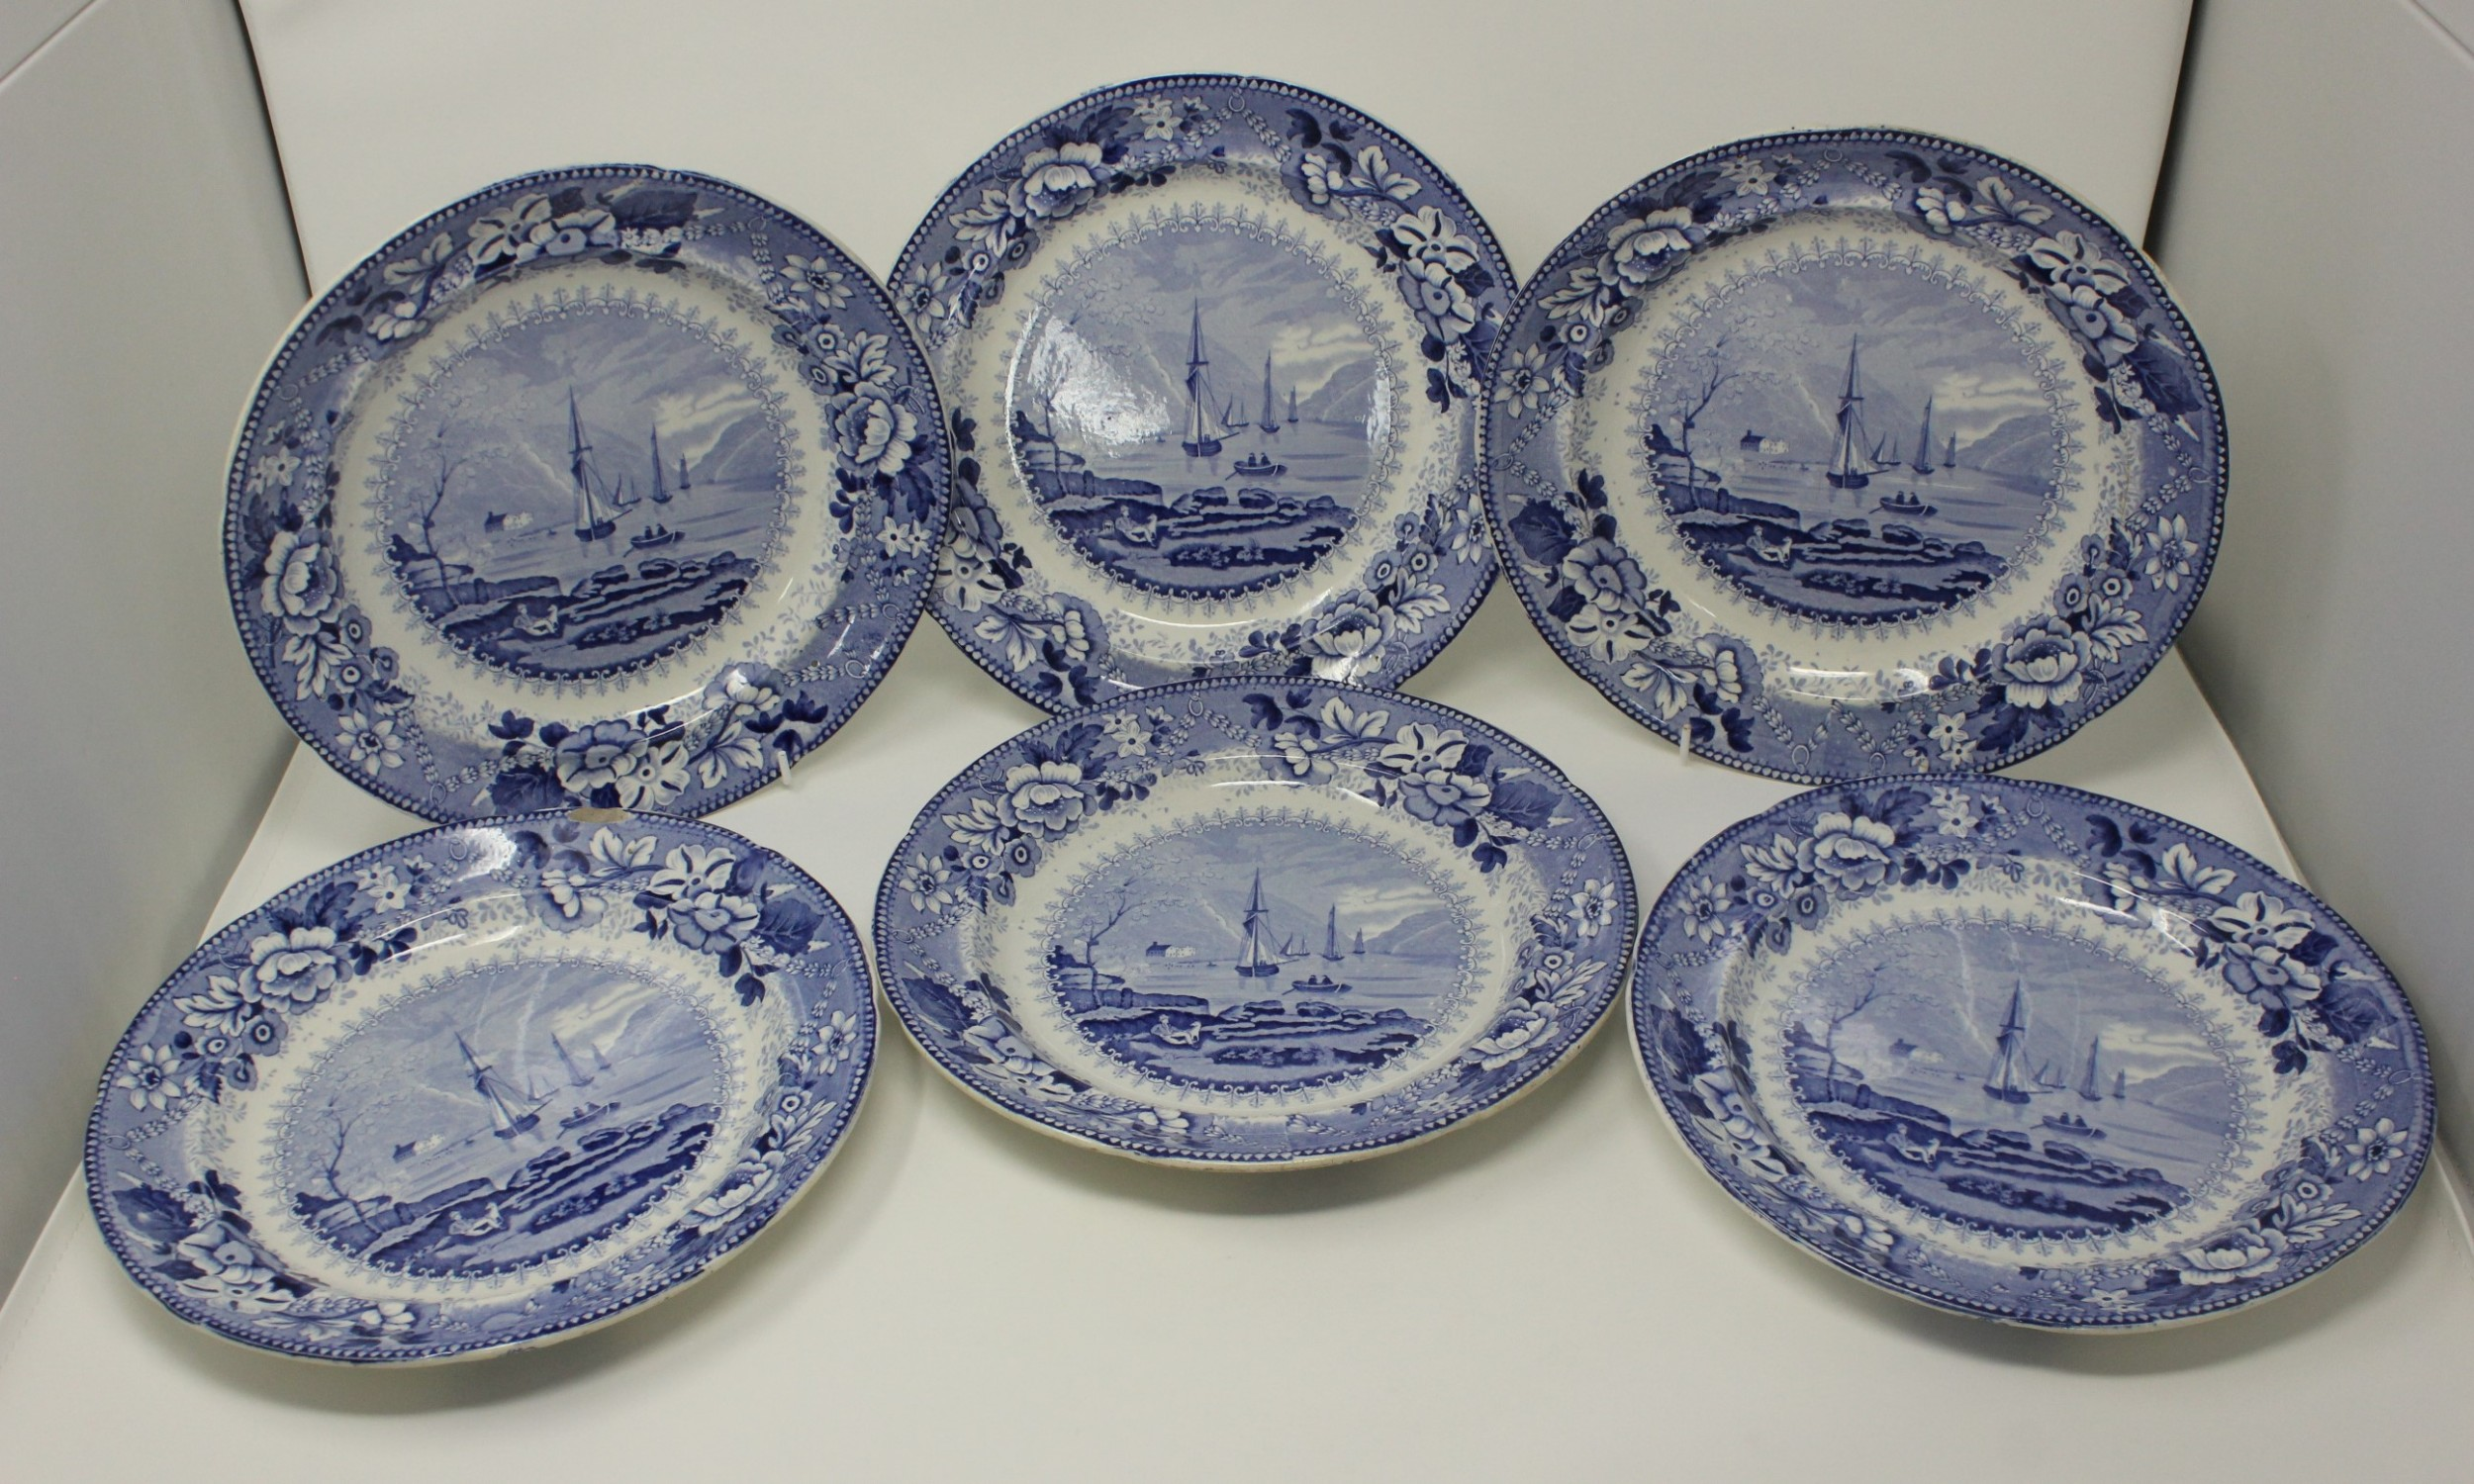 antique set 6 pearlware blue and white transferware dinner plates st vincents rocks